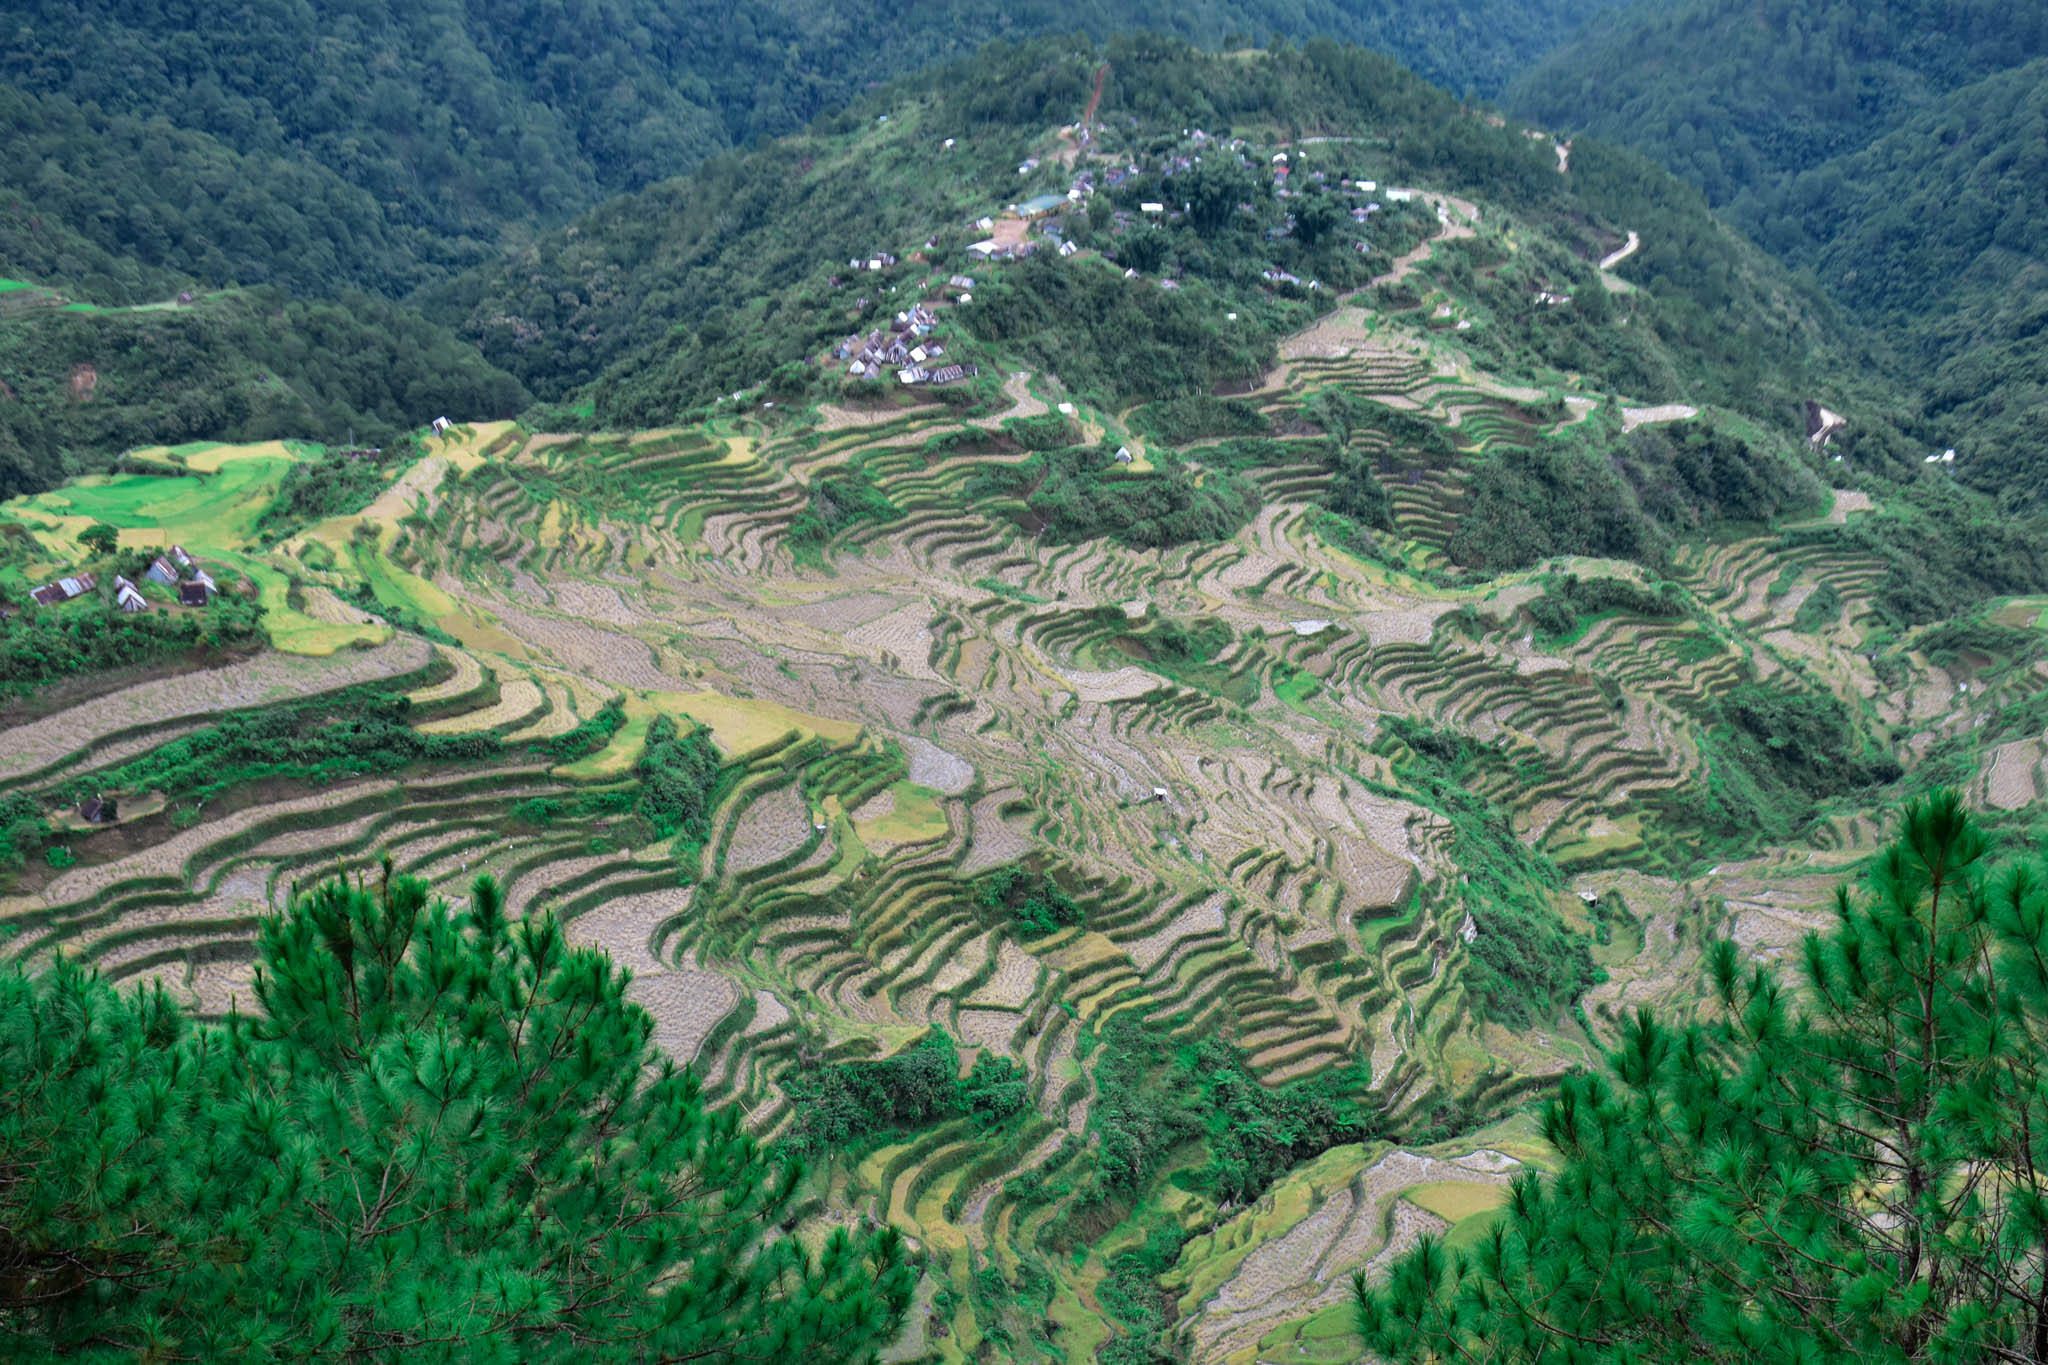 MALIGCONG RICE TERRACES 7 (1 of 1)